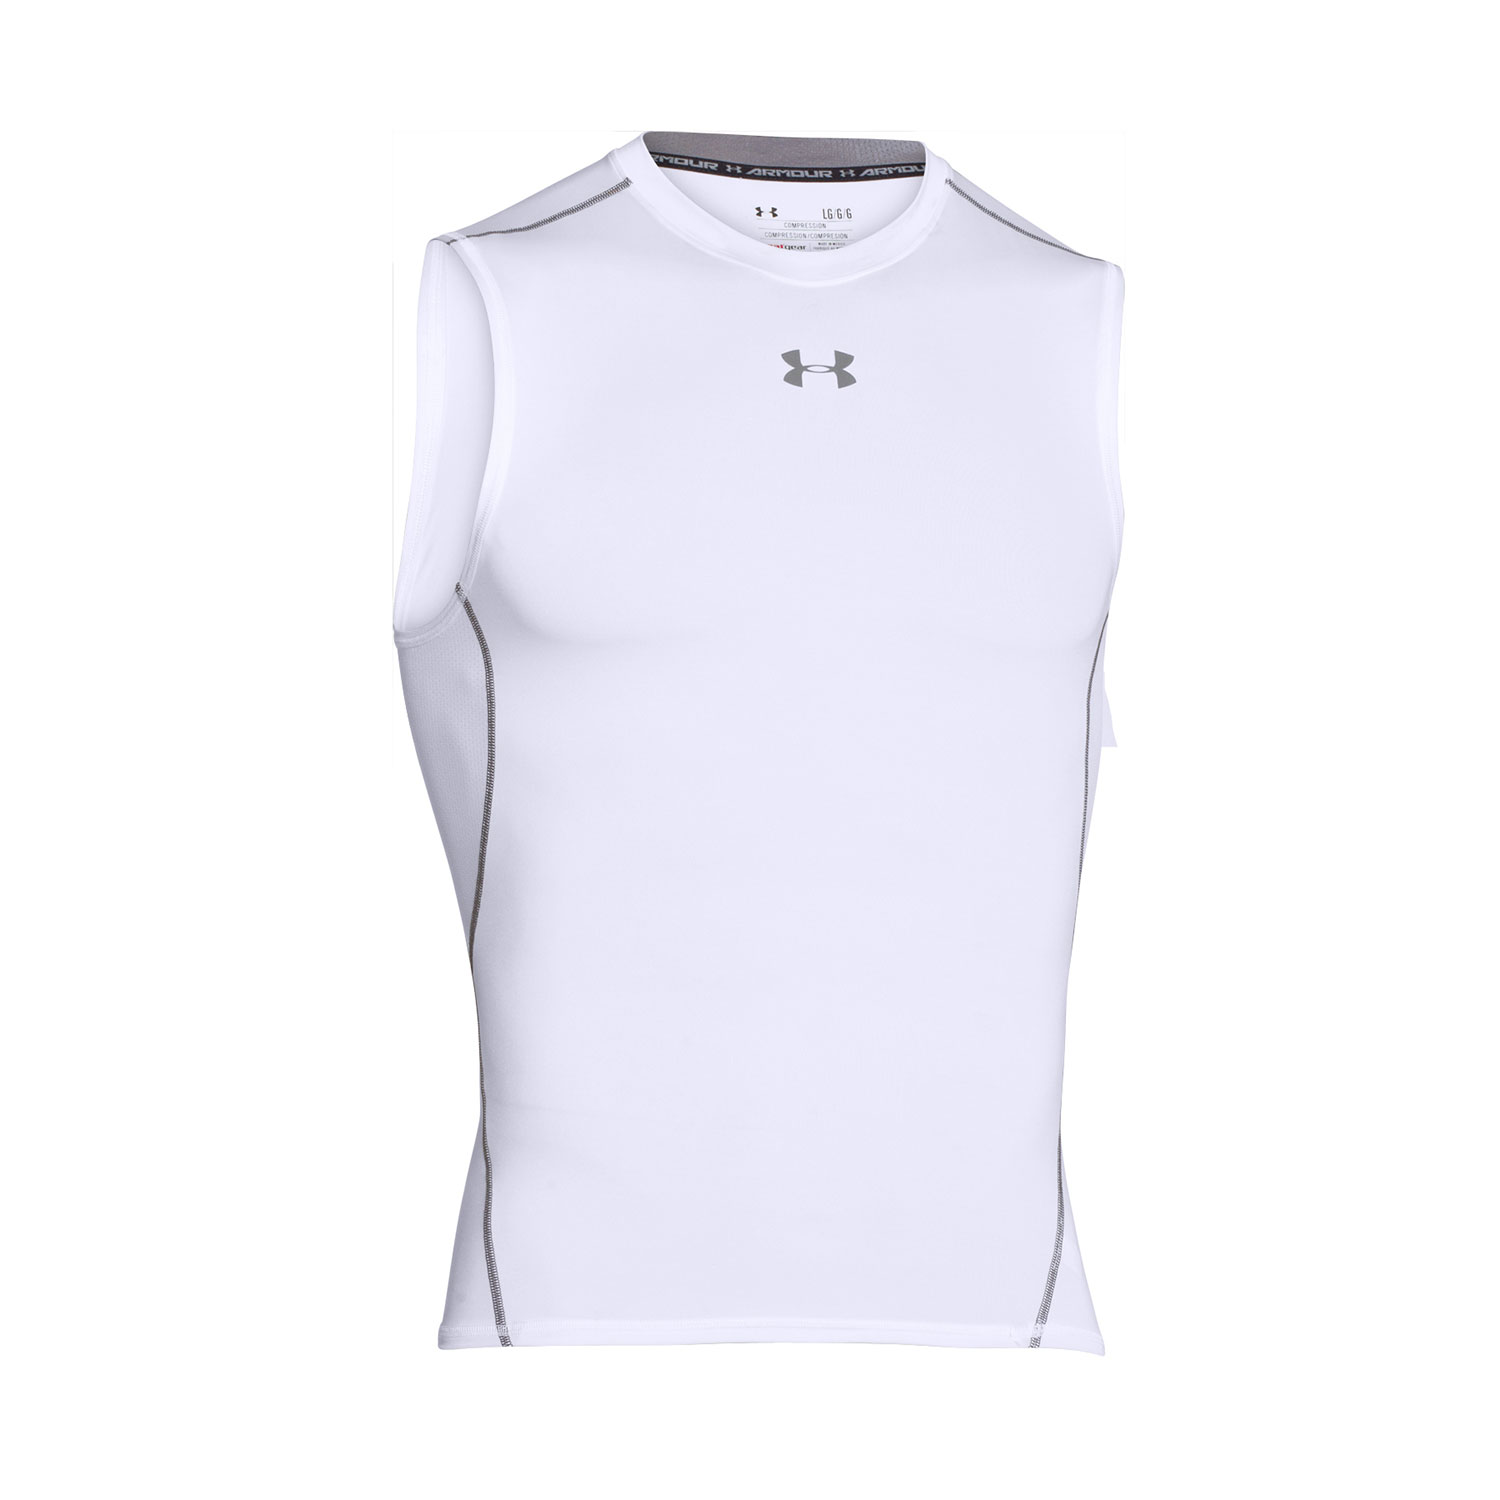 Under Armour Men's HeatGear Compression Sleeveless Tee